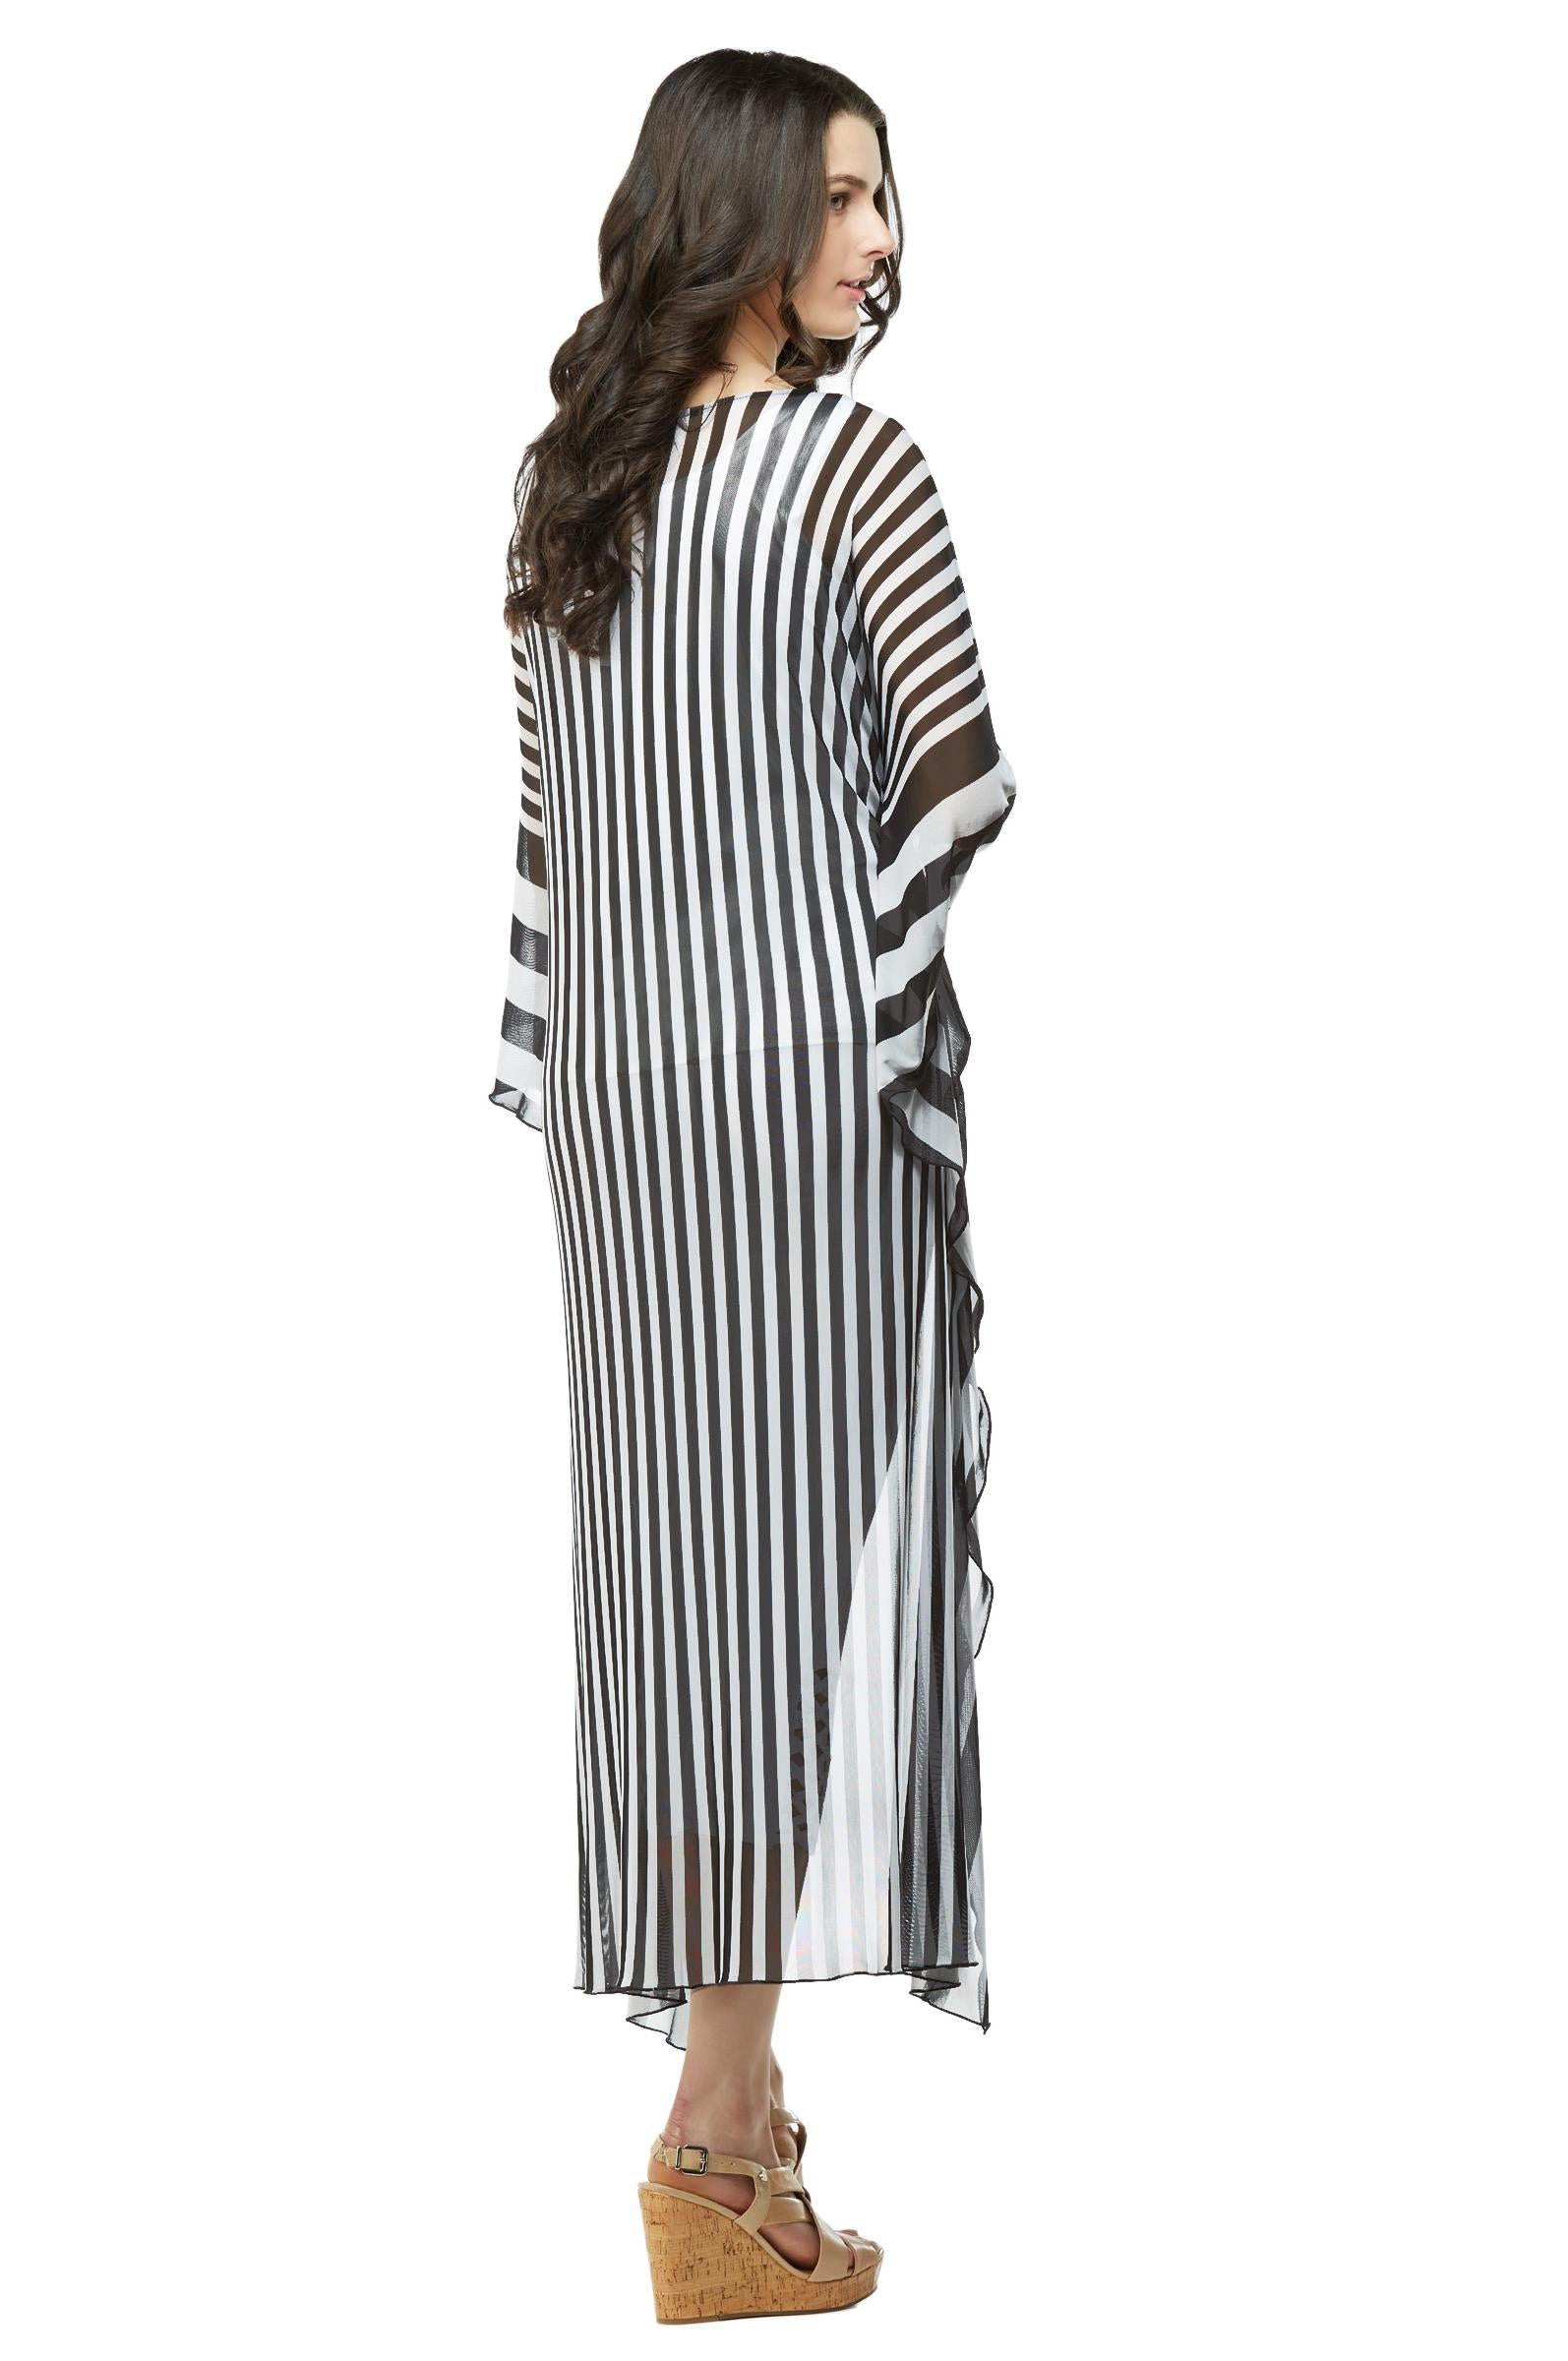 Back view woman wearing extreme high low tunic top in black and white stripes